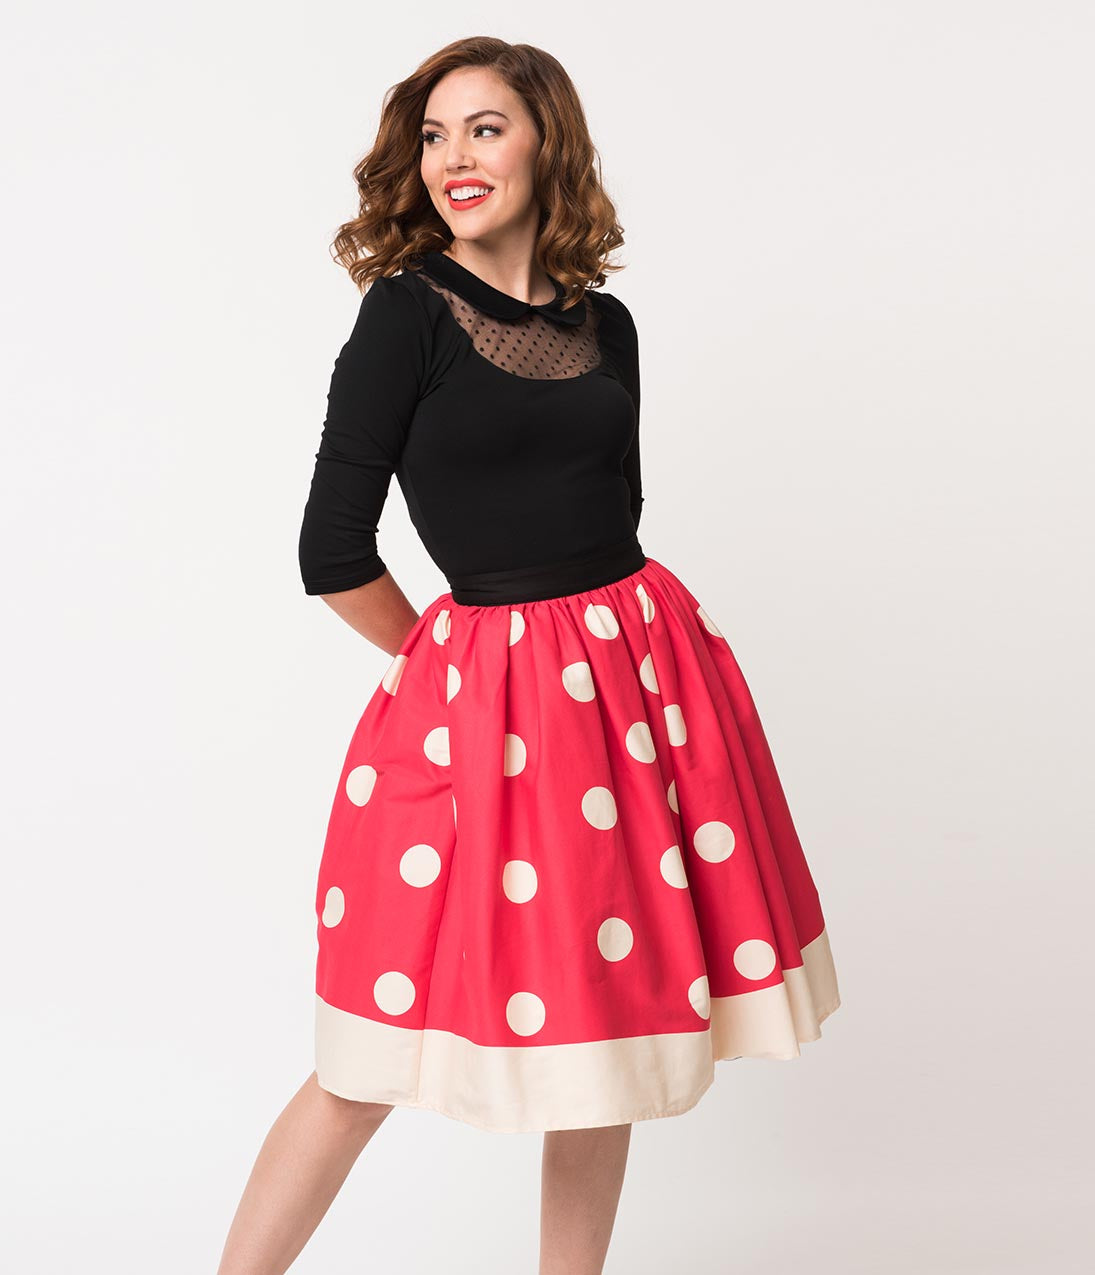 50s Skirt Styles | Poodle Skirts, Circle Skirts, Pencil Skirts Unique Vintage 1950S Red  Ivory Polka Dot High Waist Circle Swing Skirt $54.00 AT vintagedancer.com